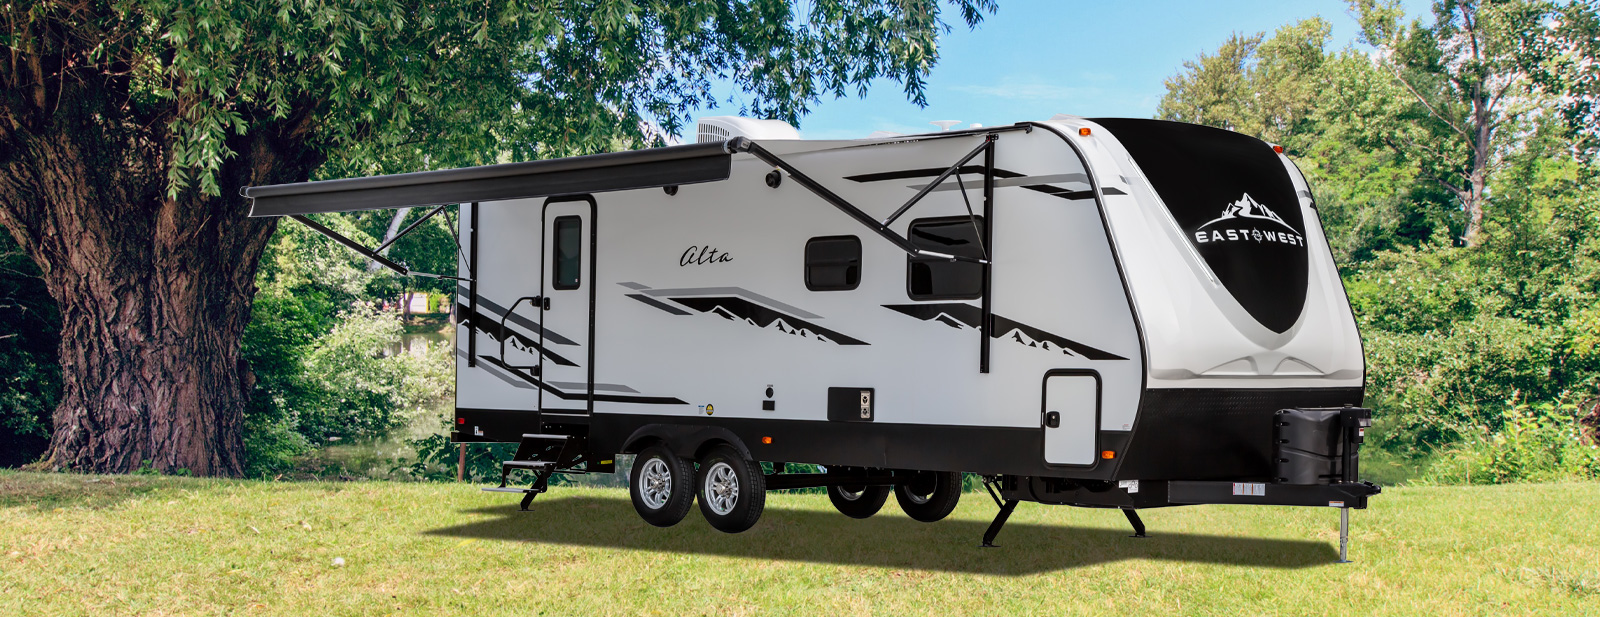 East to West Travel Trailer